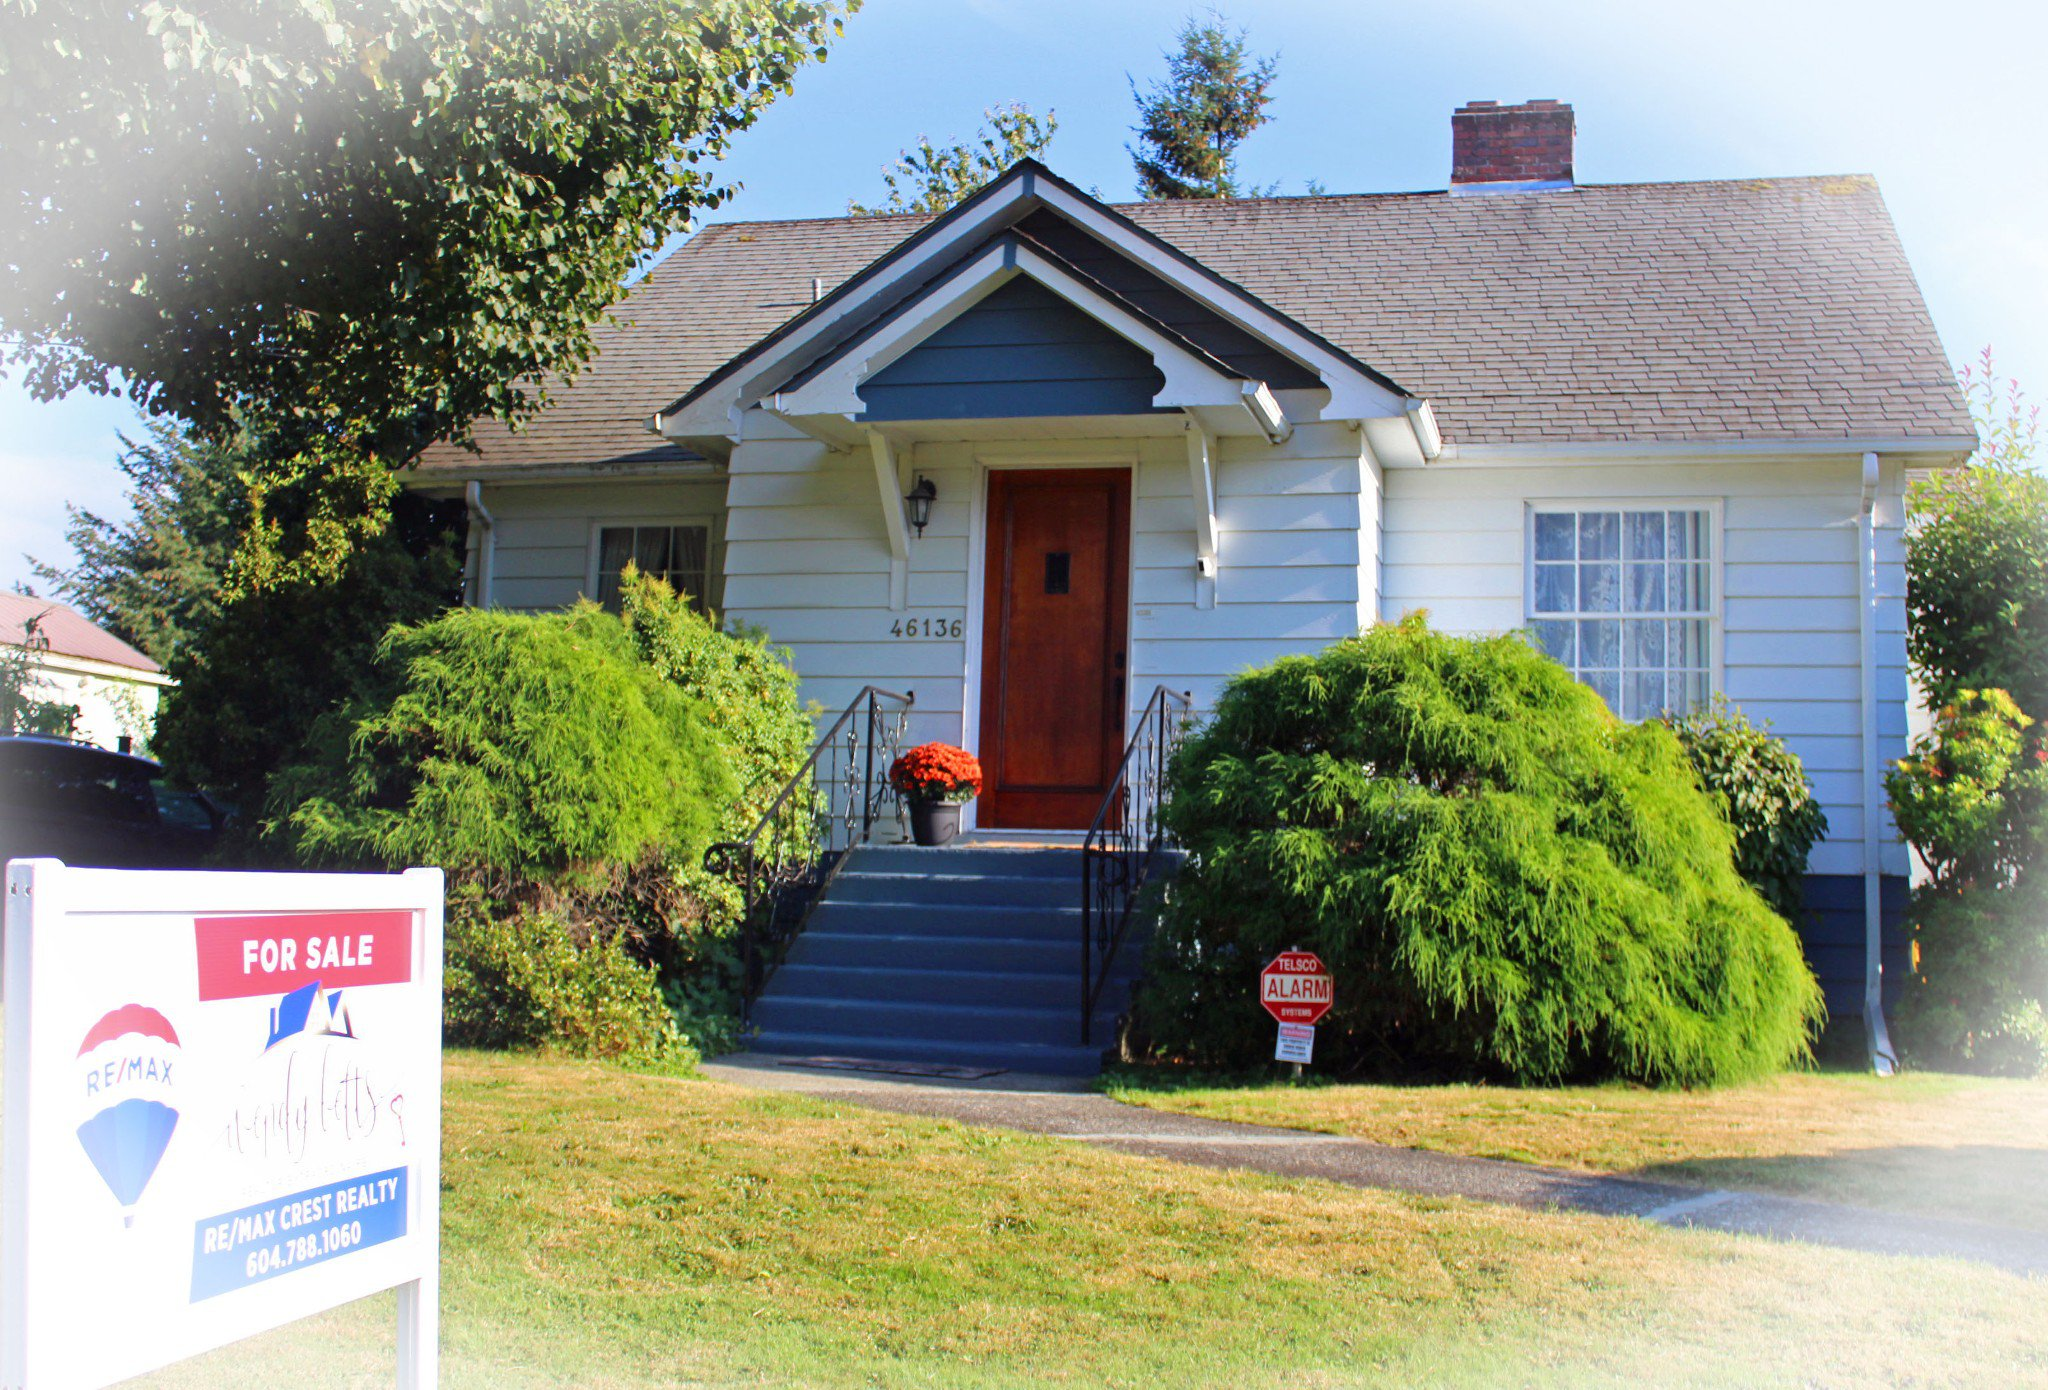 Main Photo: 46136 Mellard Avenue in Chilliwack: Chilliwack N Yale-Well House for sale